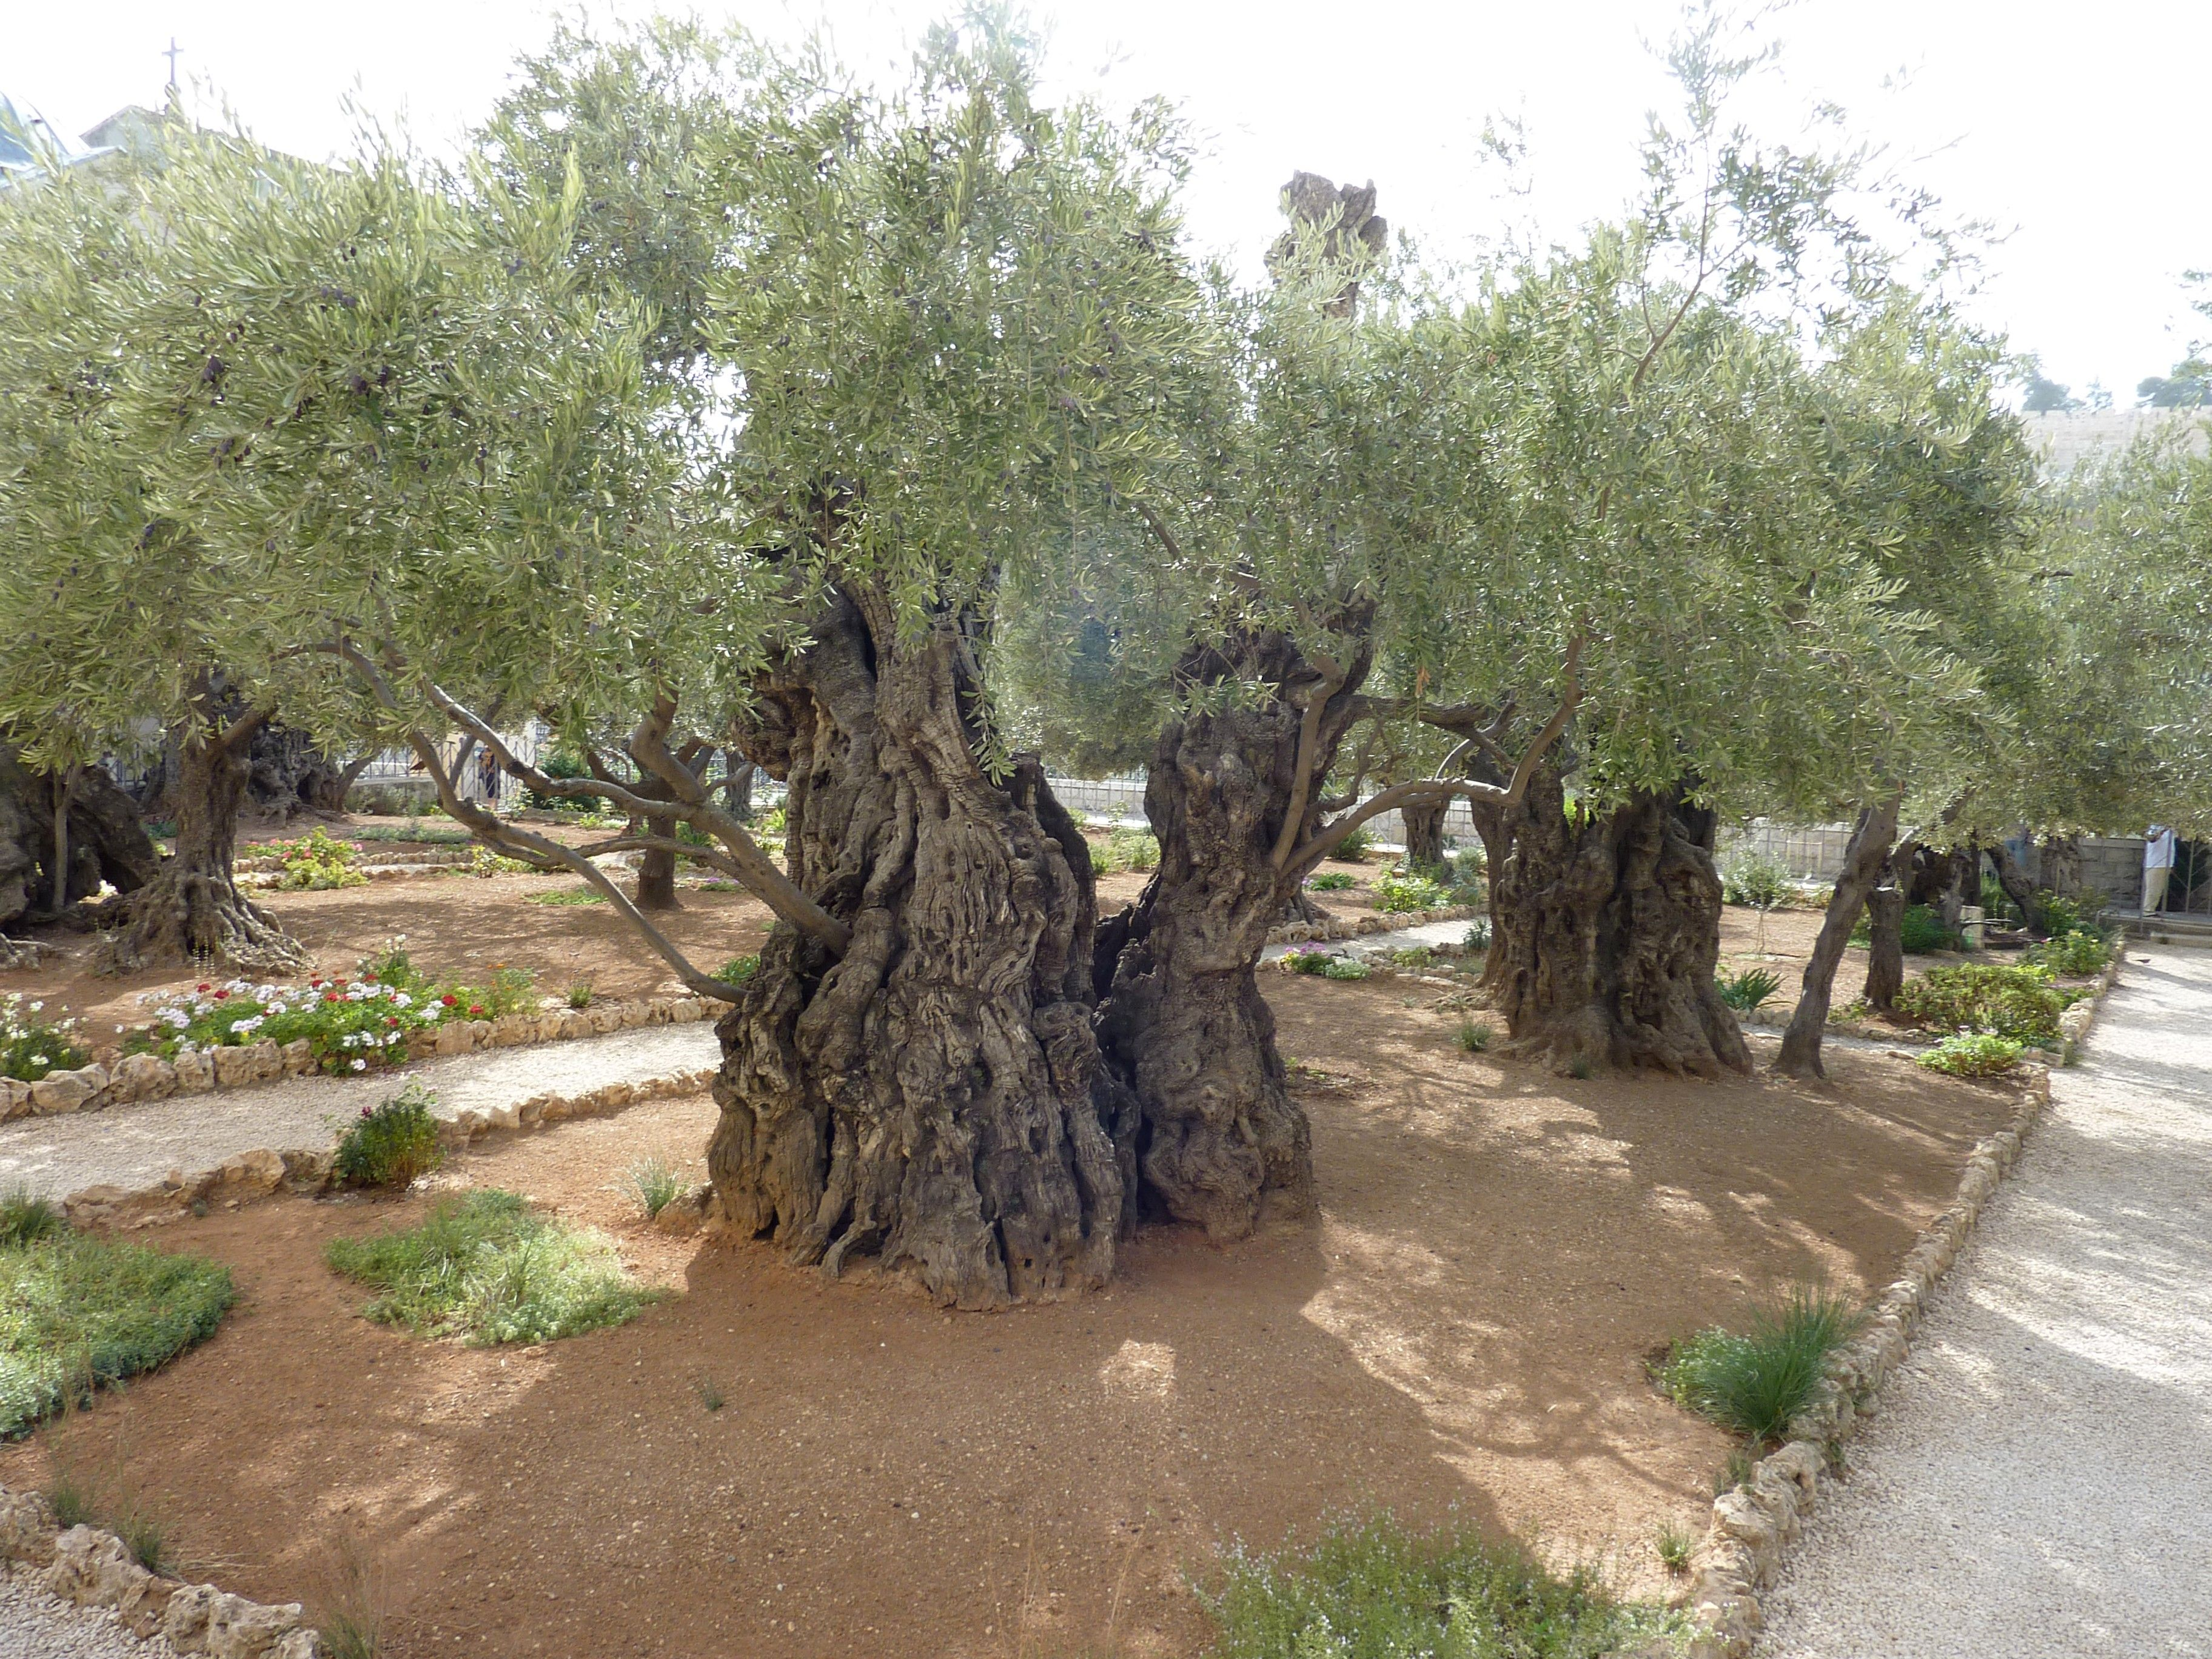 Olive trees at the Garden of Gethsemane.